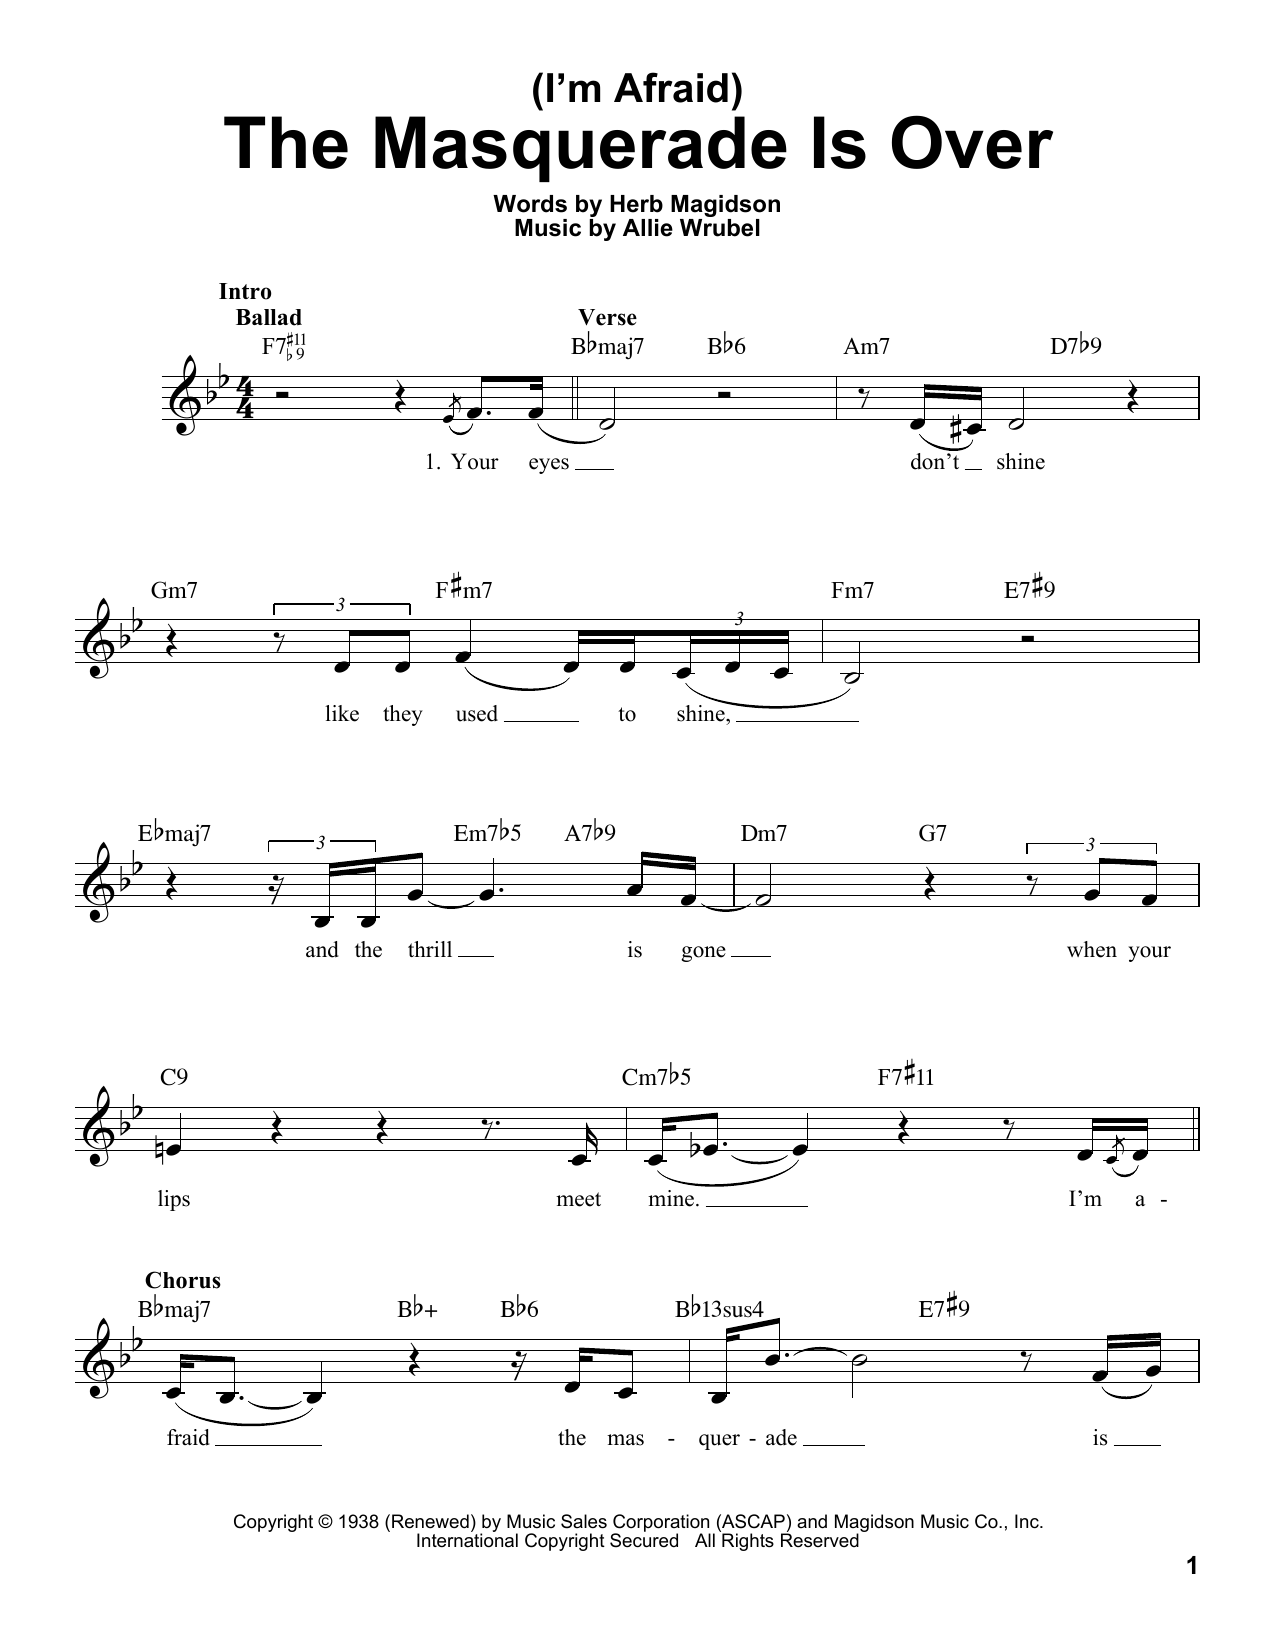 (I'm Afraid) The Masquerade Is Over Sheet Music